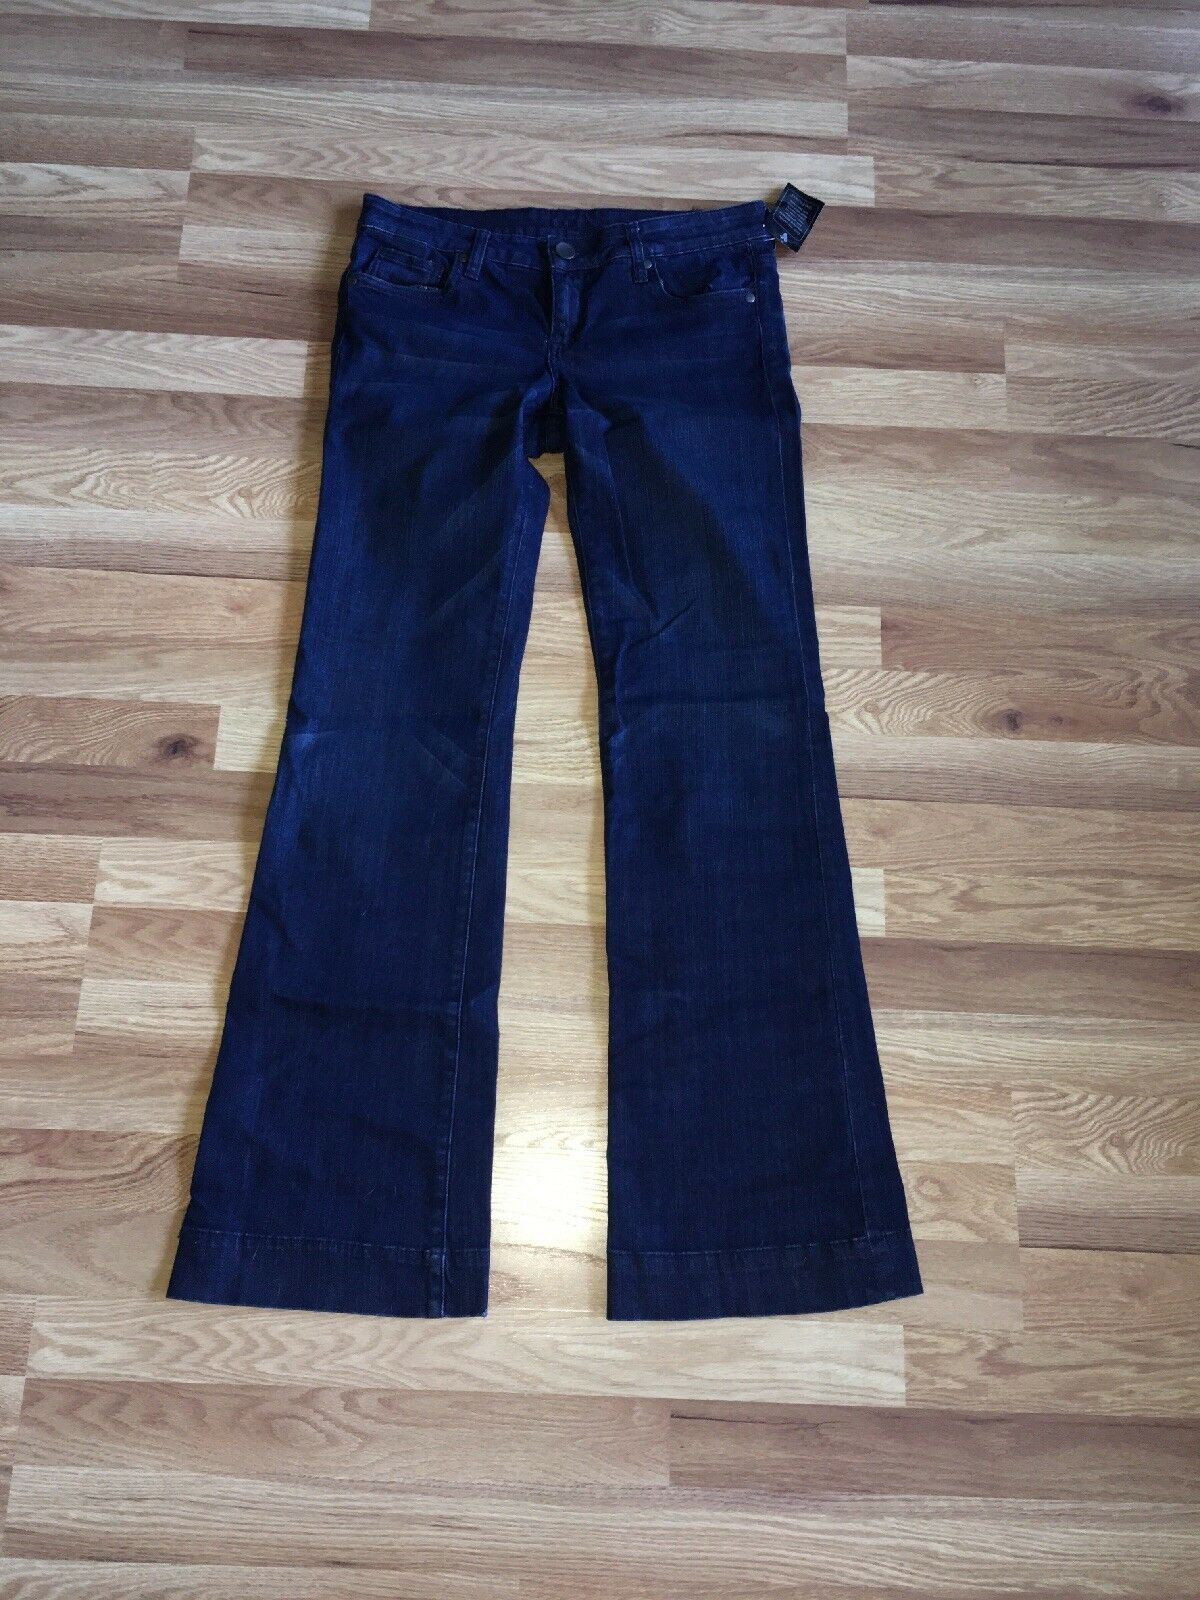 SEE THRU SOUL JEANS  Denim 29 Bella flare  Brescia New with Tags